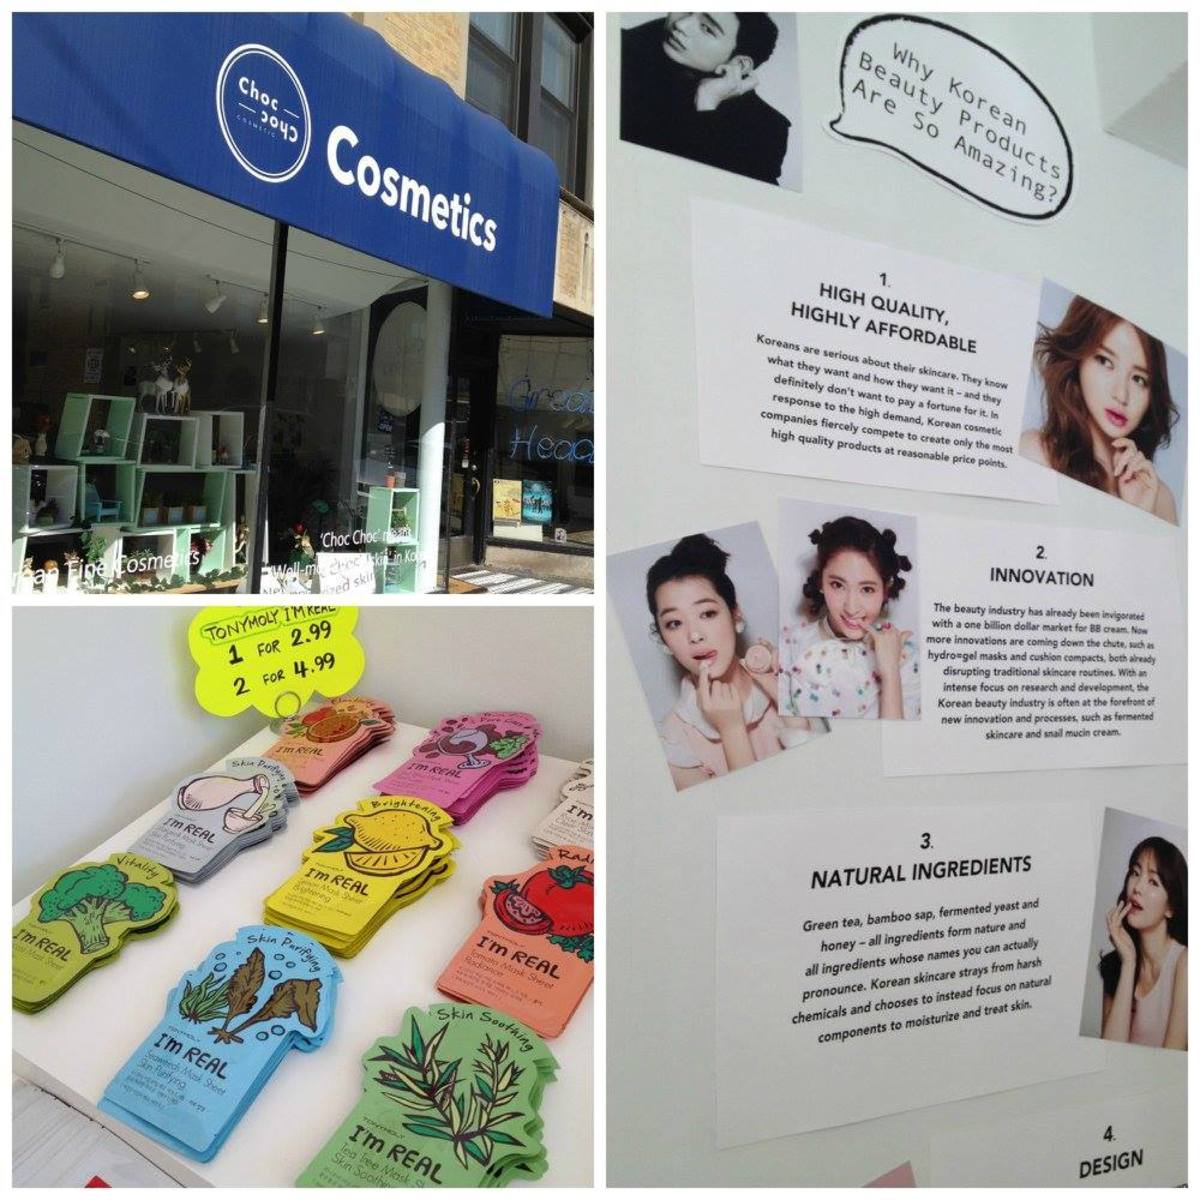 Choc Choc Cosmetic, 614 West Belmont Ave, Chicago (Lakeview)